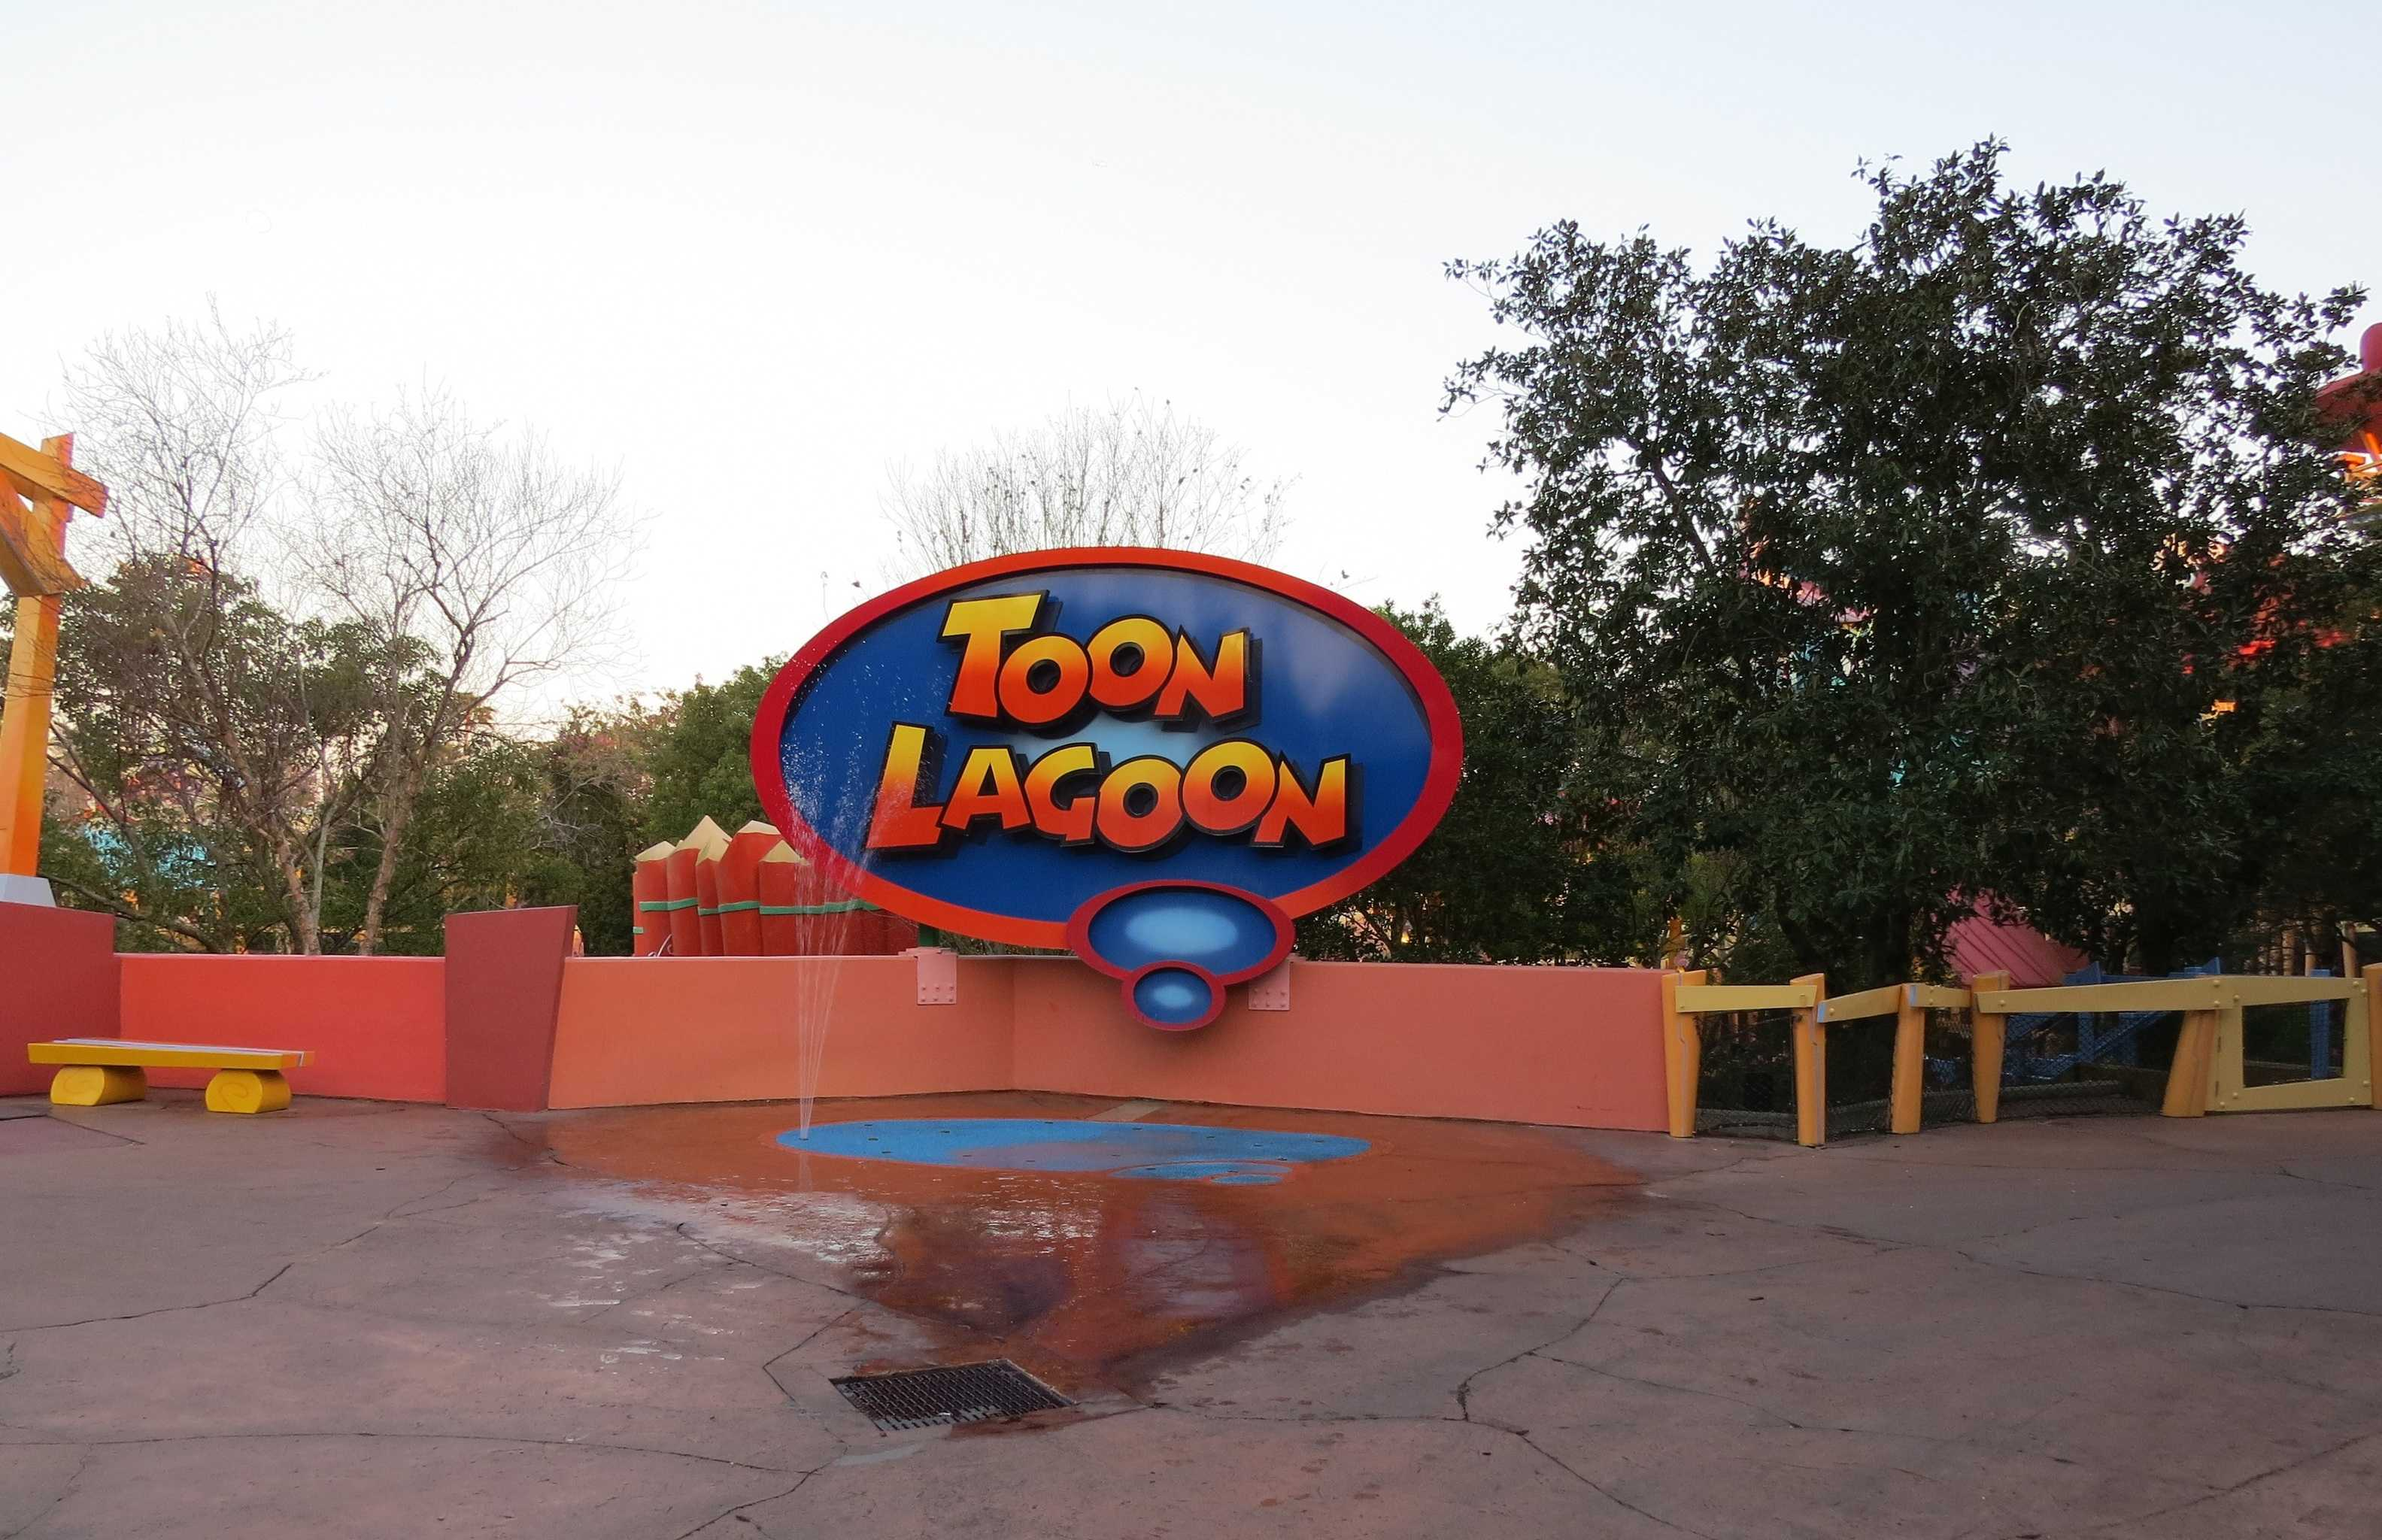 The aging Toon Lagoon could use a face lift.